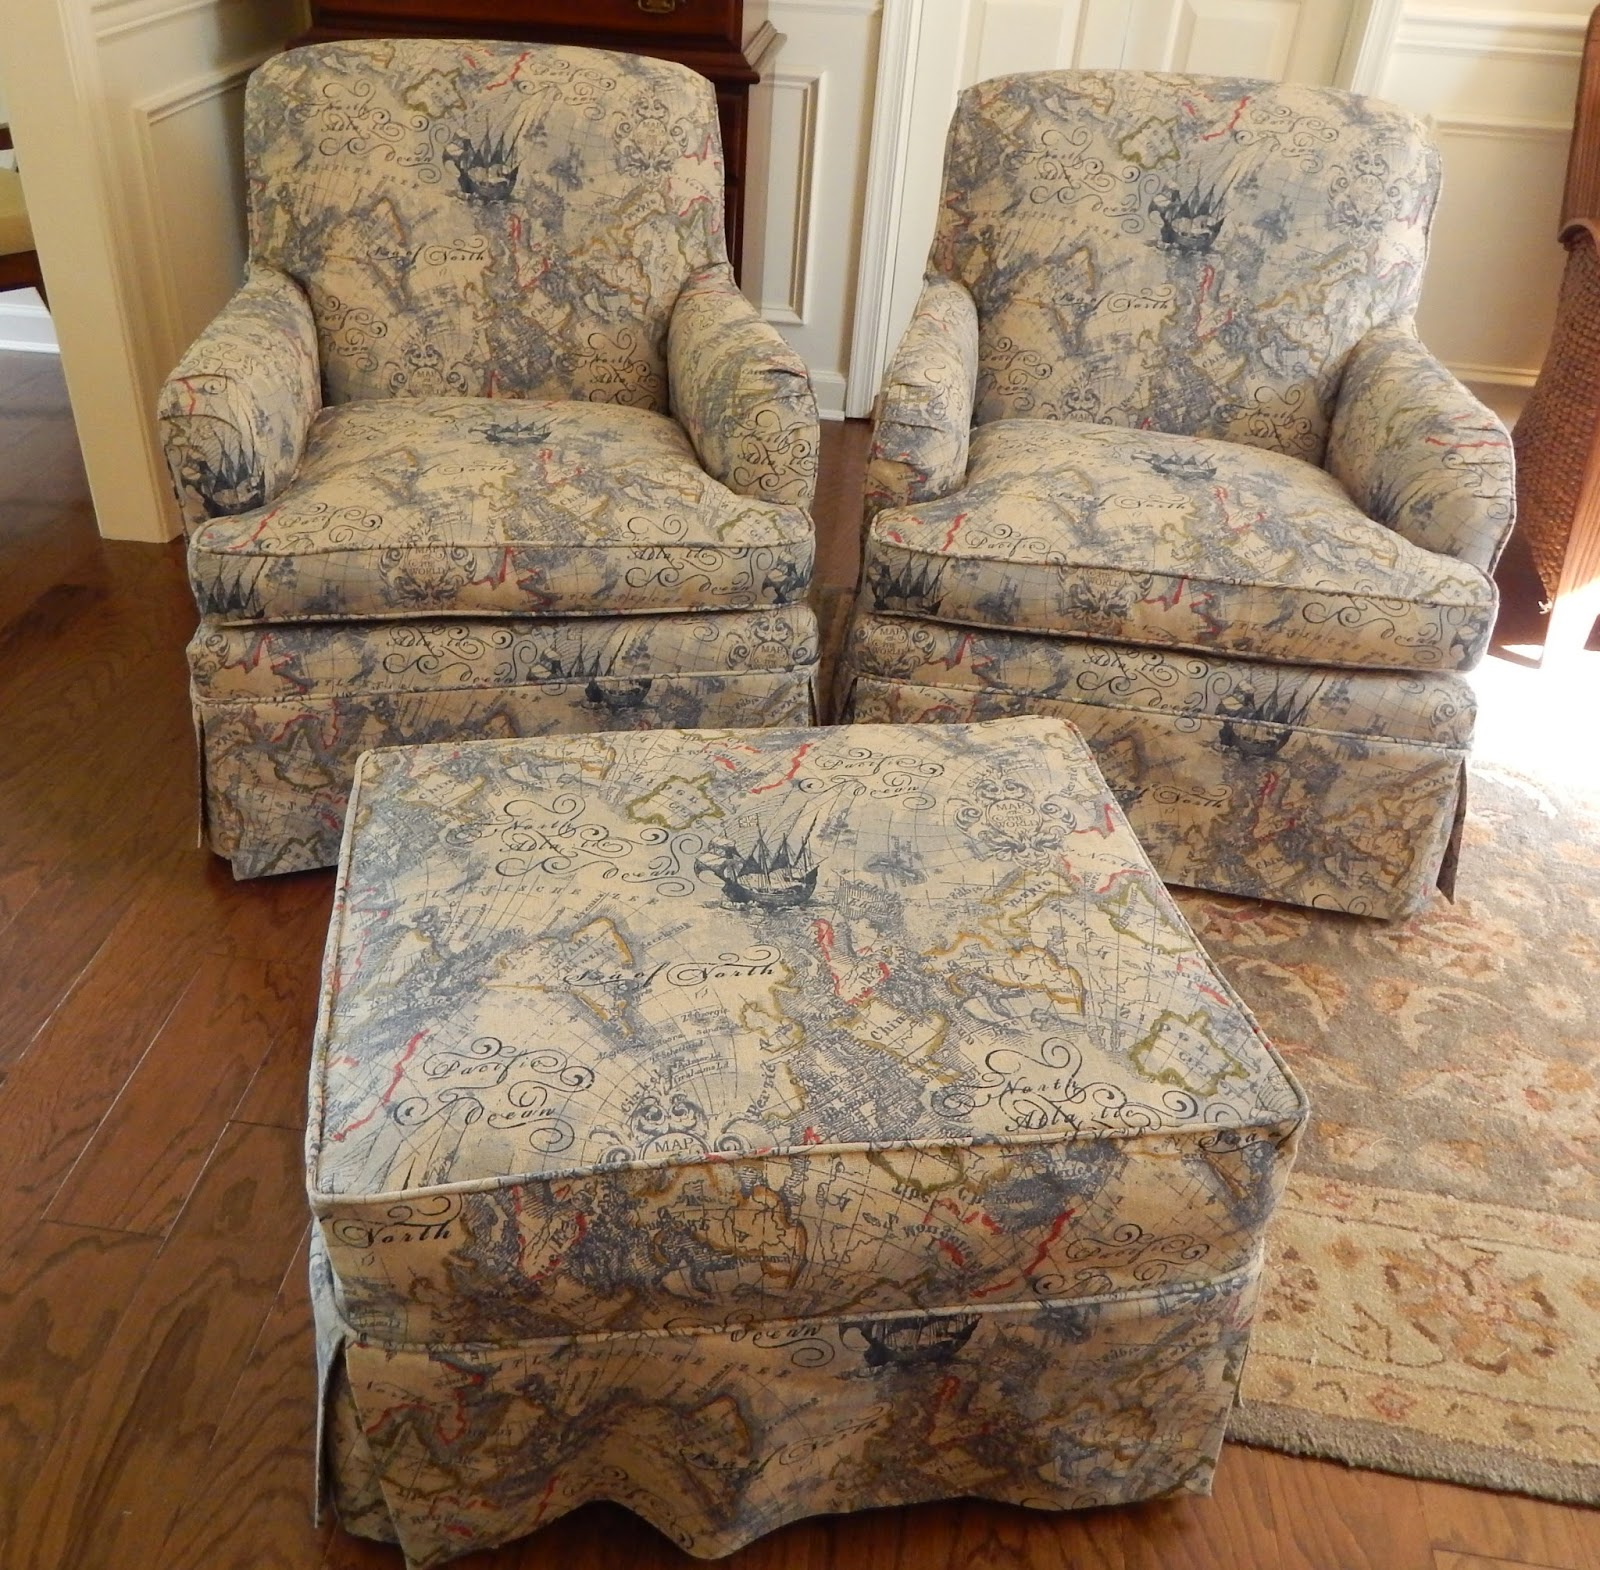 Slipcover For Oversized Chair And Ottoman Pam Morris Sews Slipcovers